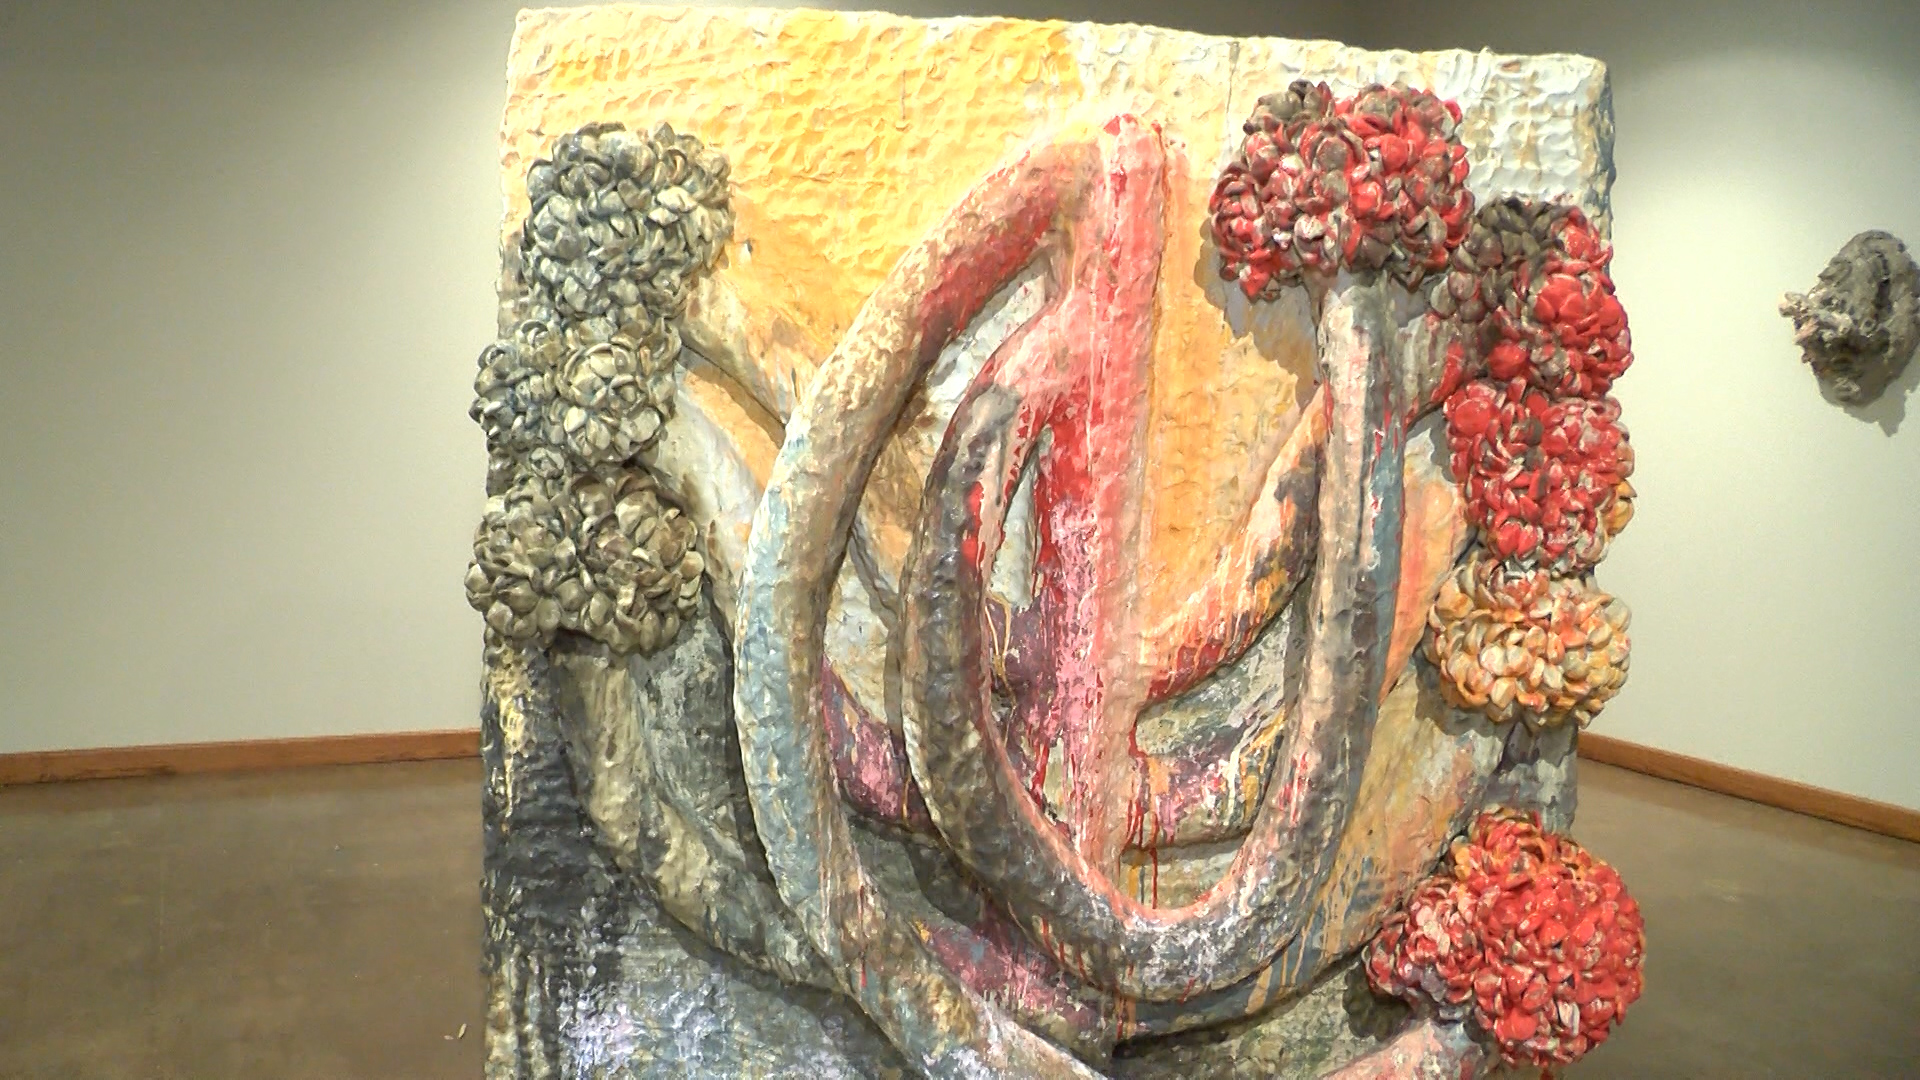 An art exhibit at the Wichita Falls Museum of Art is forcing its audience to be aware of the marks they make in life.